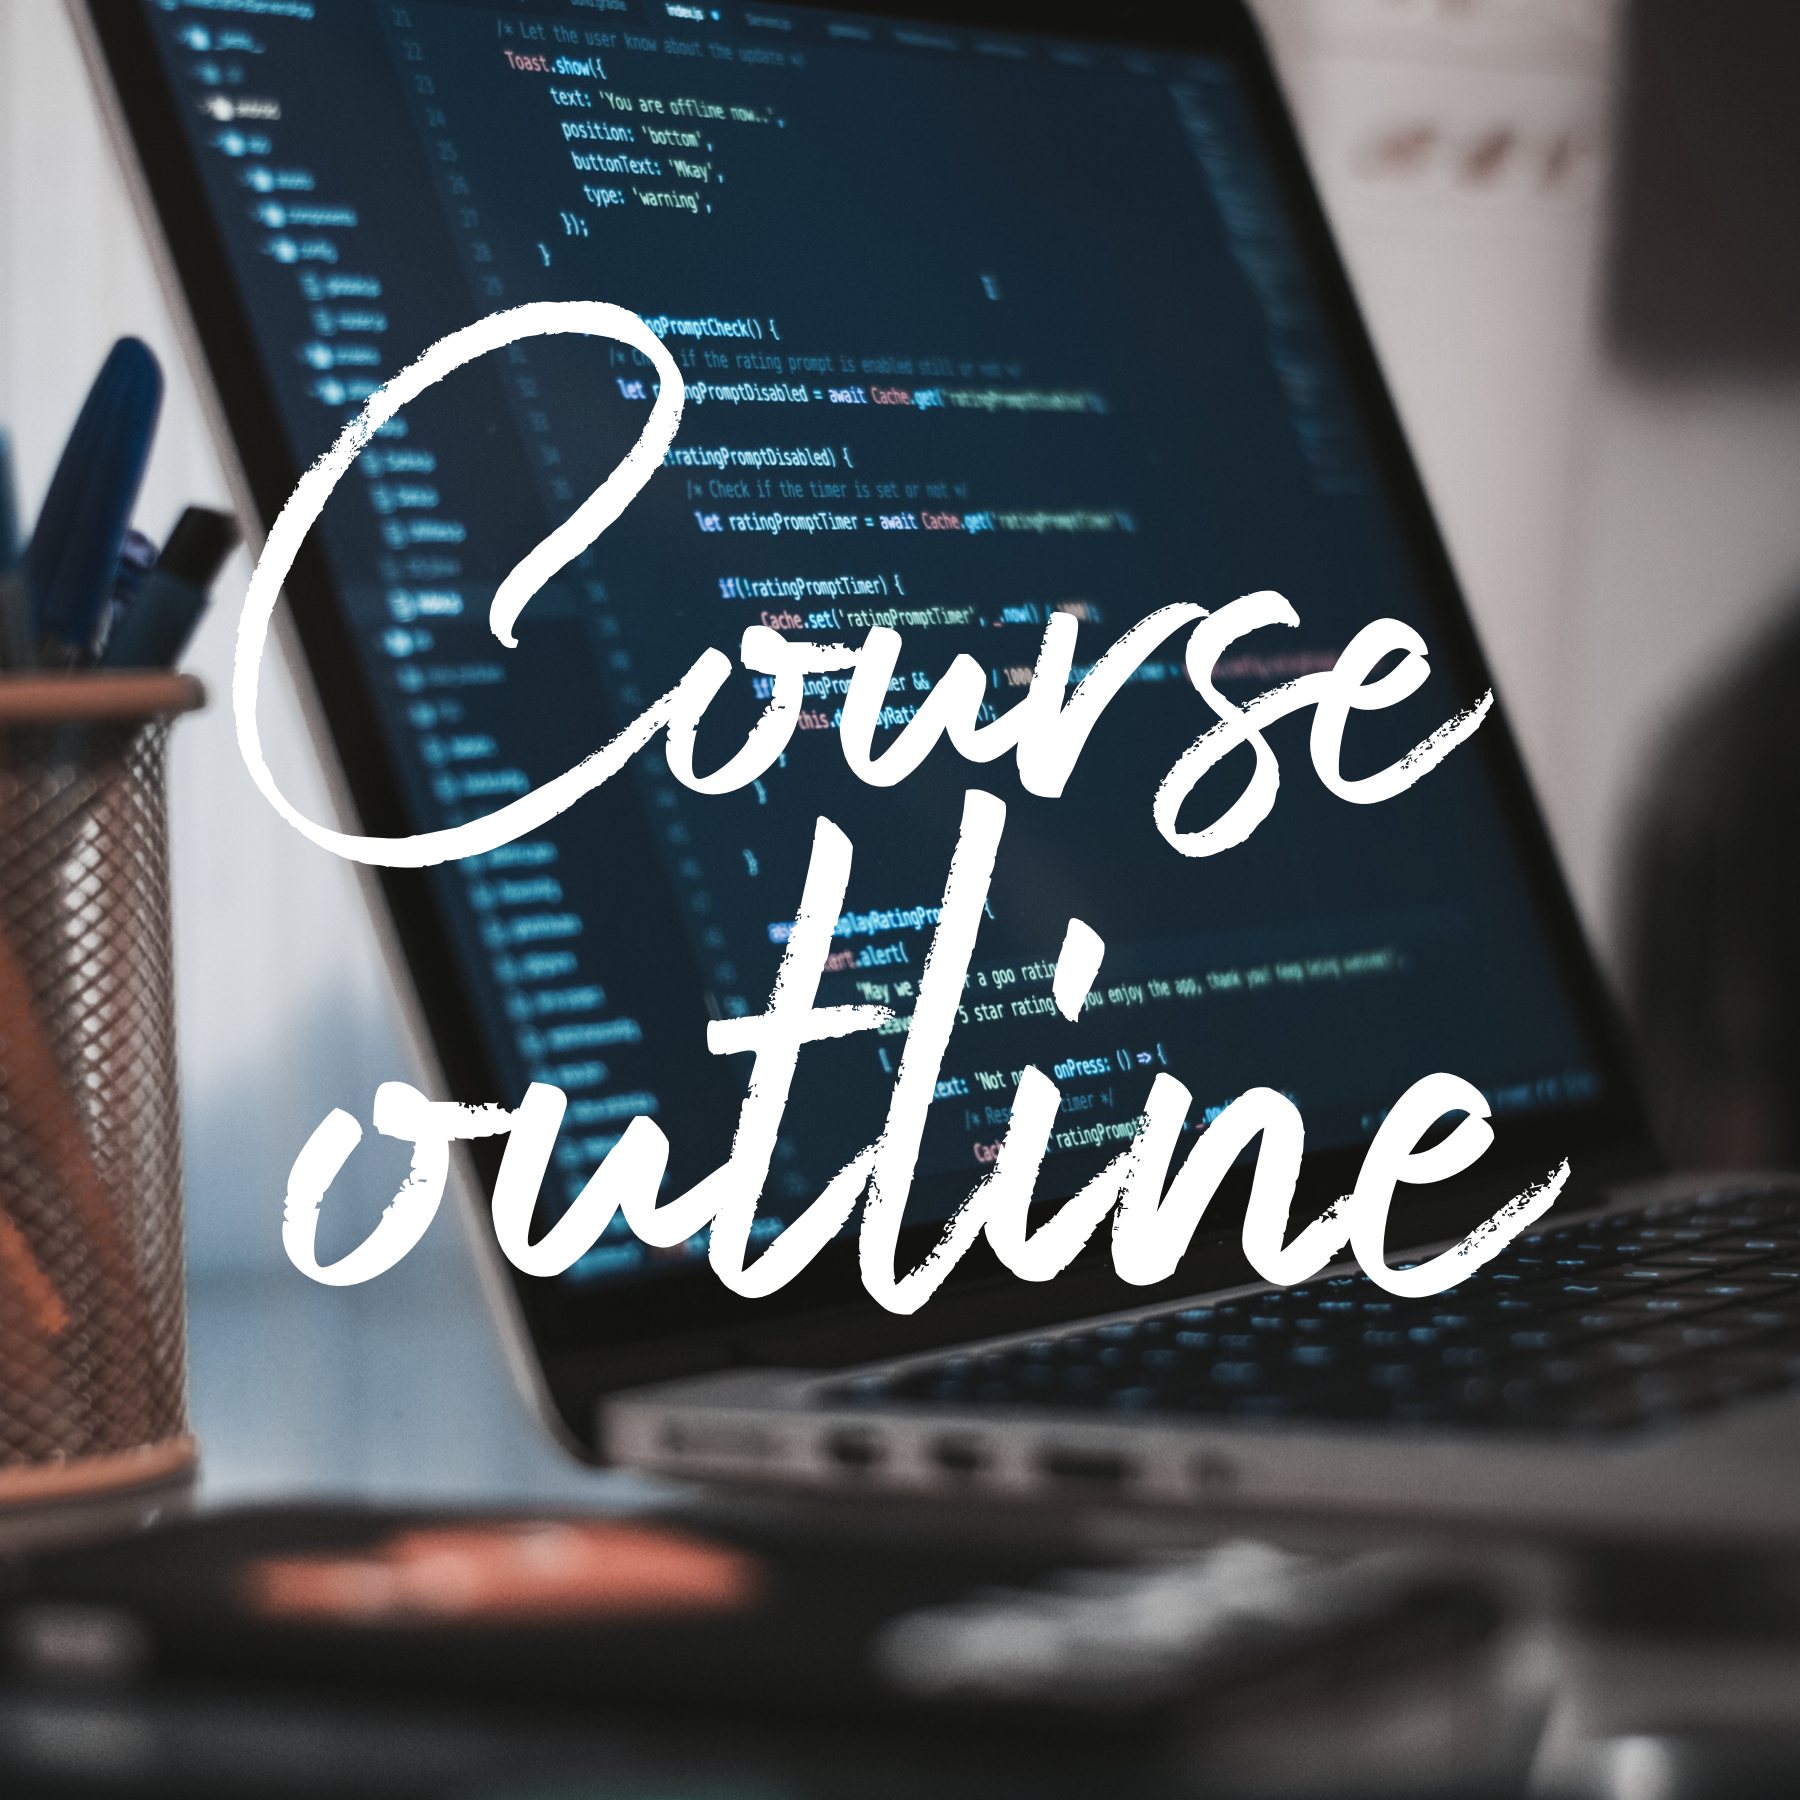 COURSE OUTLINE. - Everything you need to know.